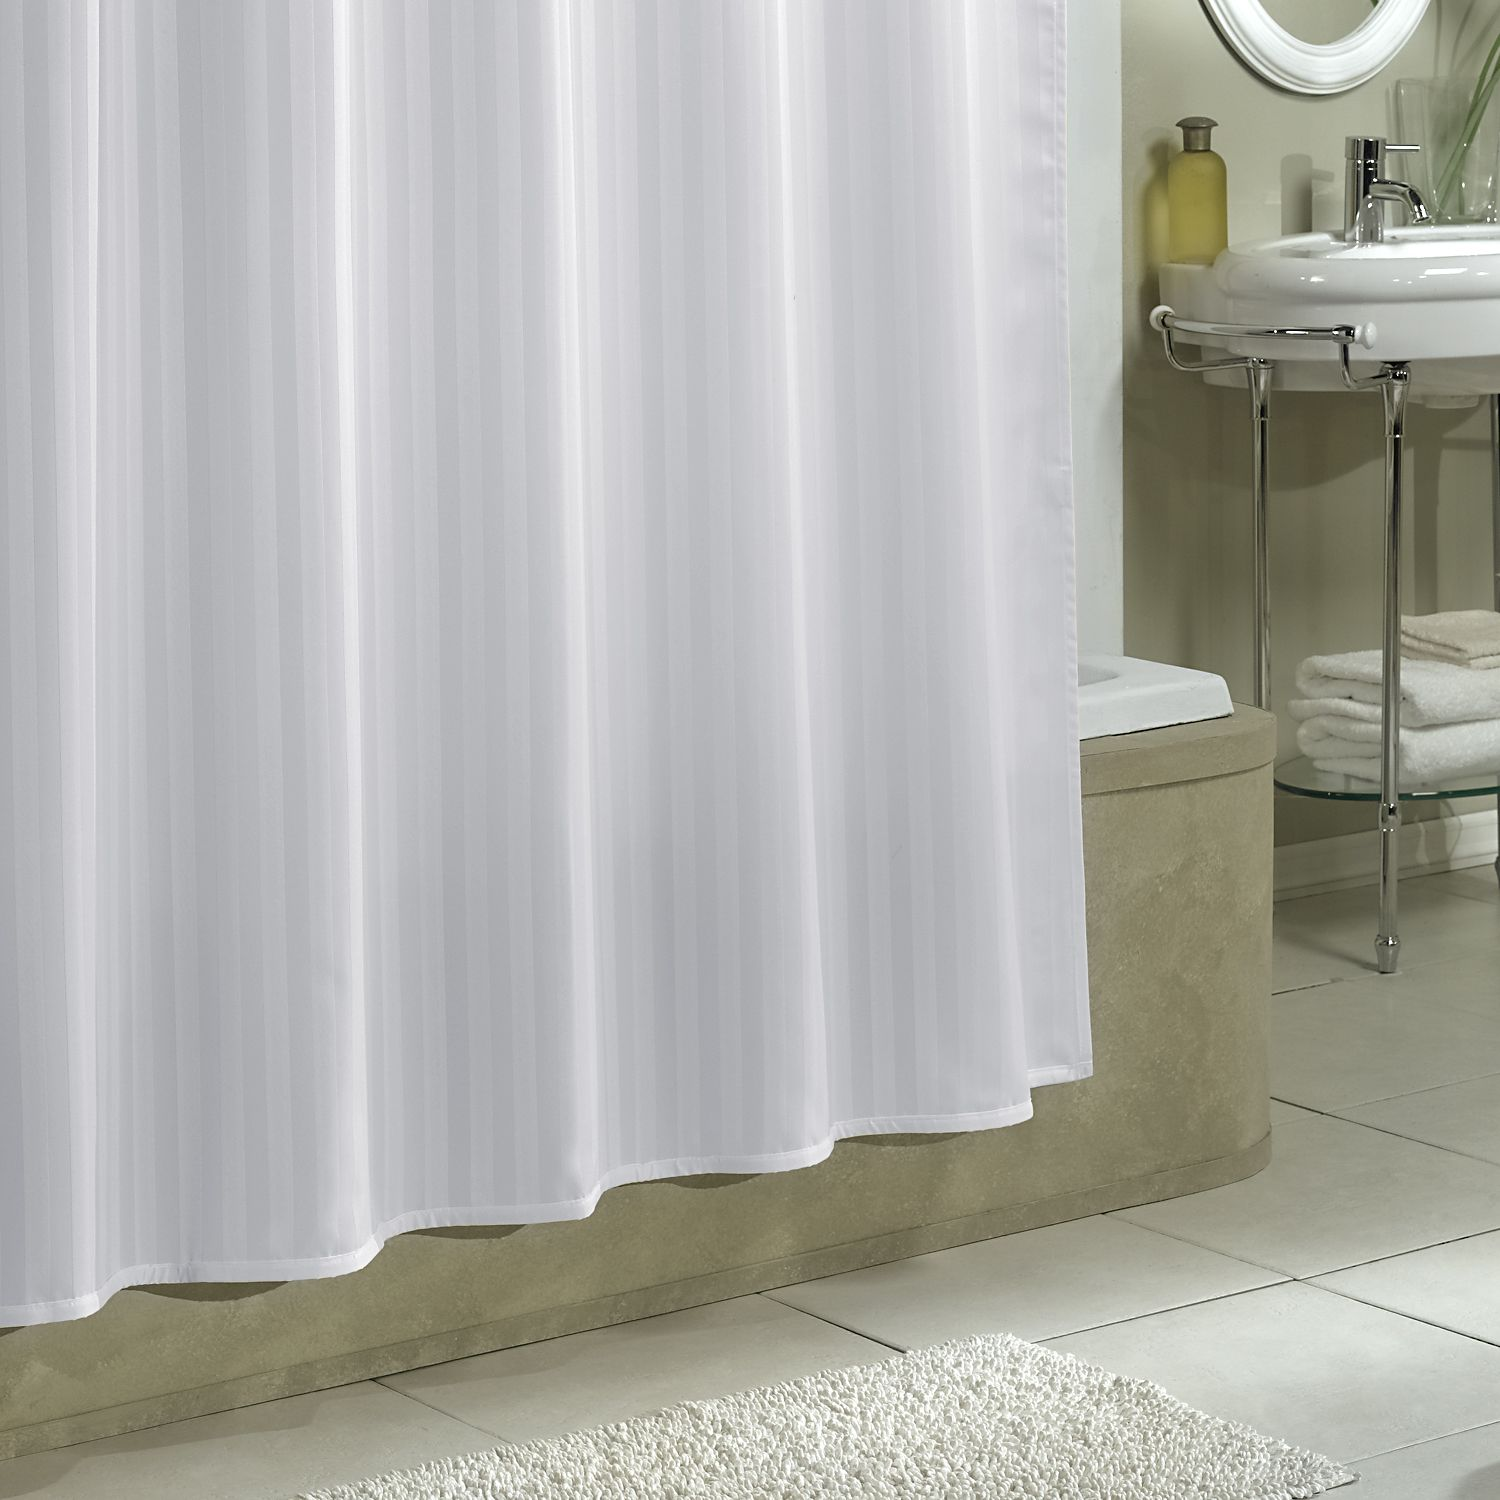 10 Best Shower Curtain Liners - (Reviews & Unbiased Guide 2018)